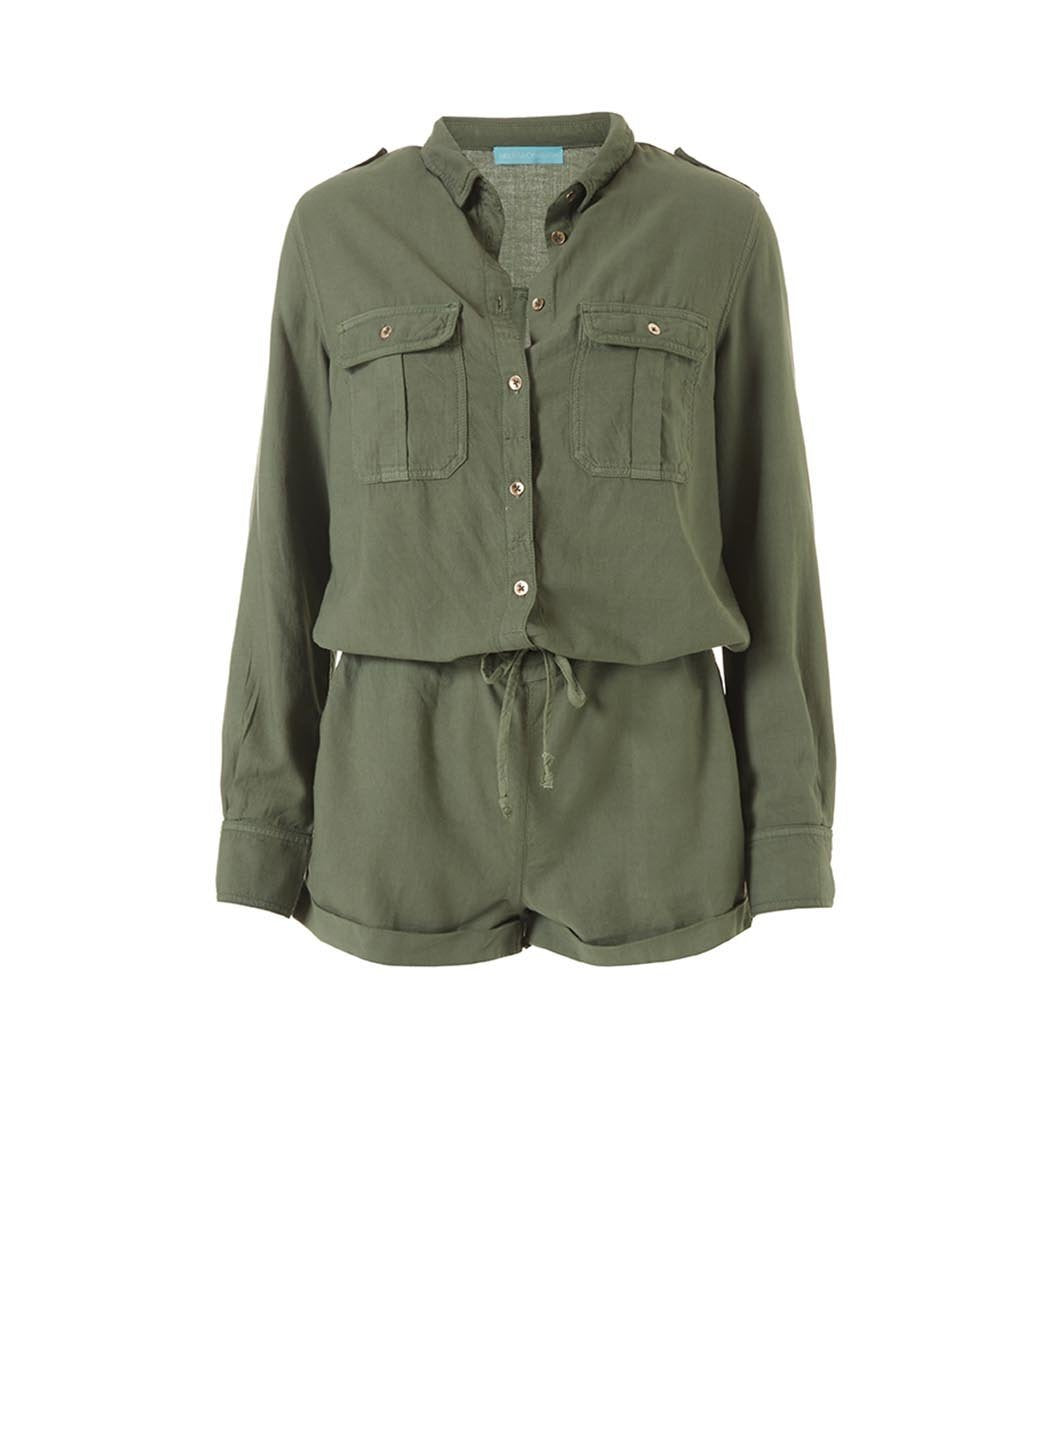 honour olive playsuit